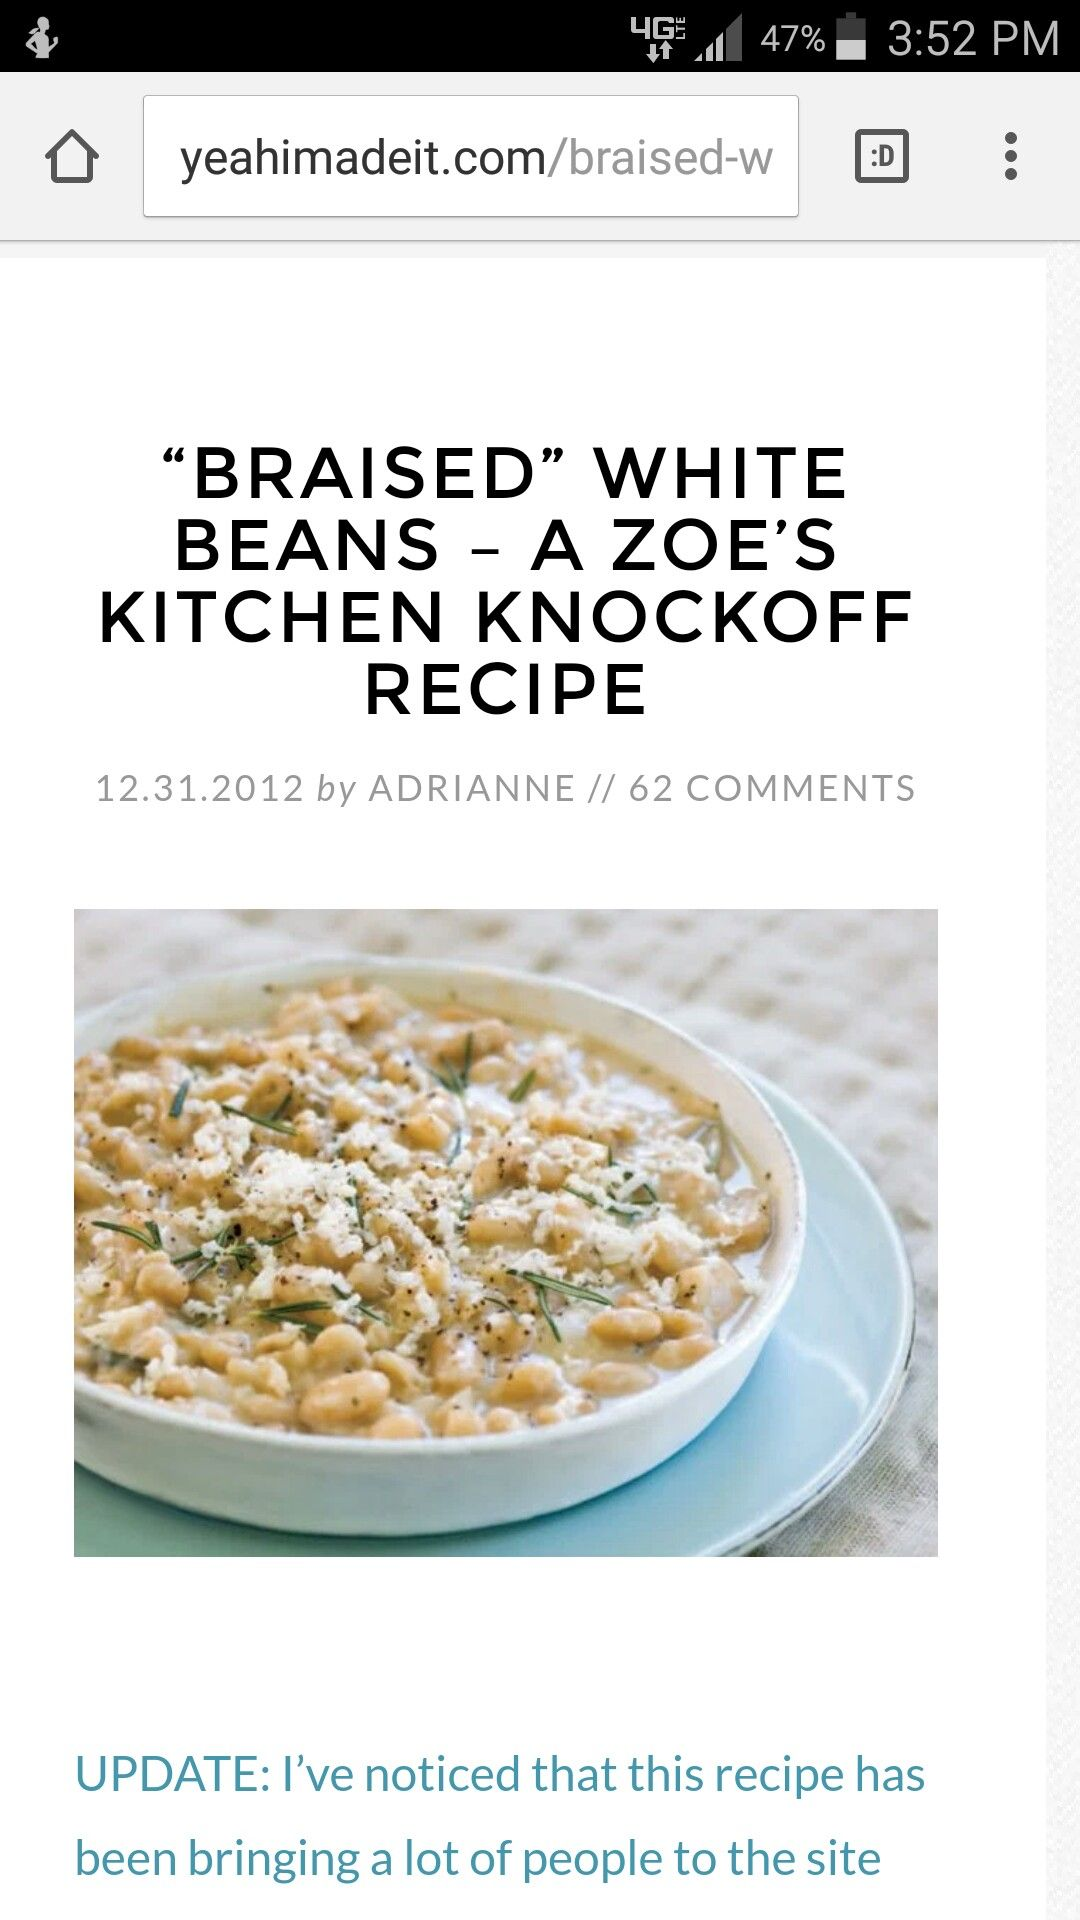 http://yeahimadeit.com/braised-white-beans-a-zoes-kitchen-knockoff ...